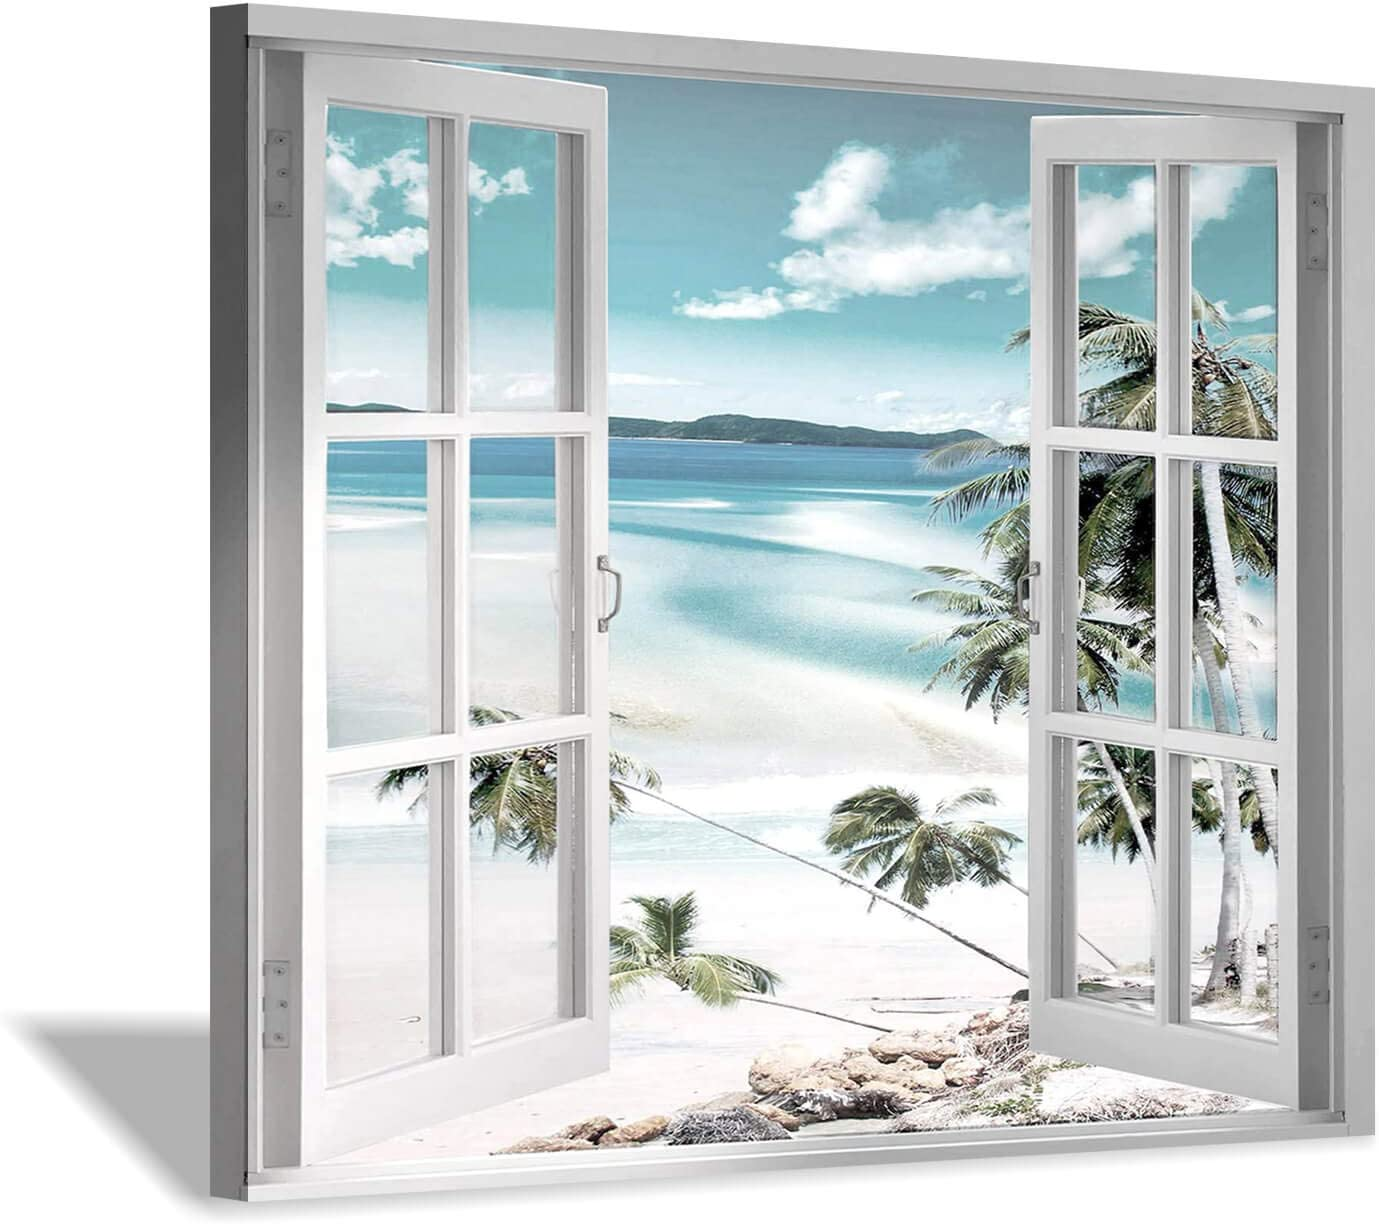 Open Windows Canvas Wall Art: Beach with Coastal Palm Graphic Artwork Print on Wrapped Canvas for Wall Decor(24''x18'')